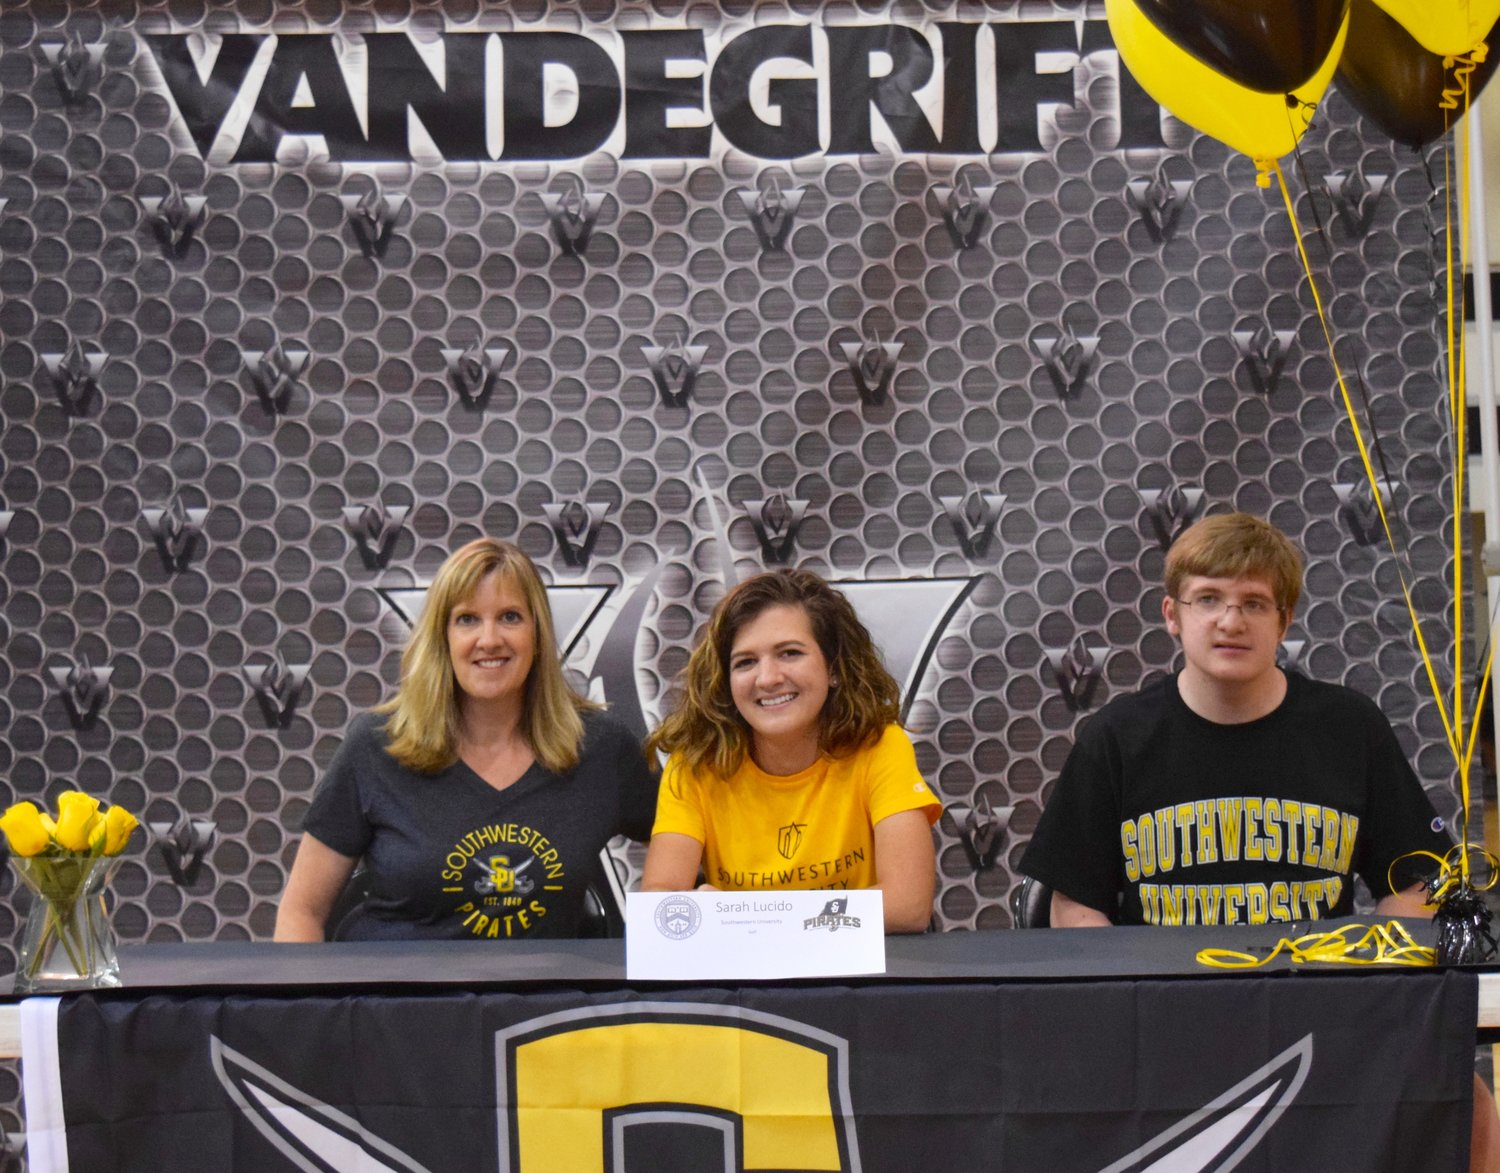 Sarah Lucida signed on to play golf at Southwestern University at a signing day celebration Friday morning at Vandegrift High School.